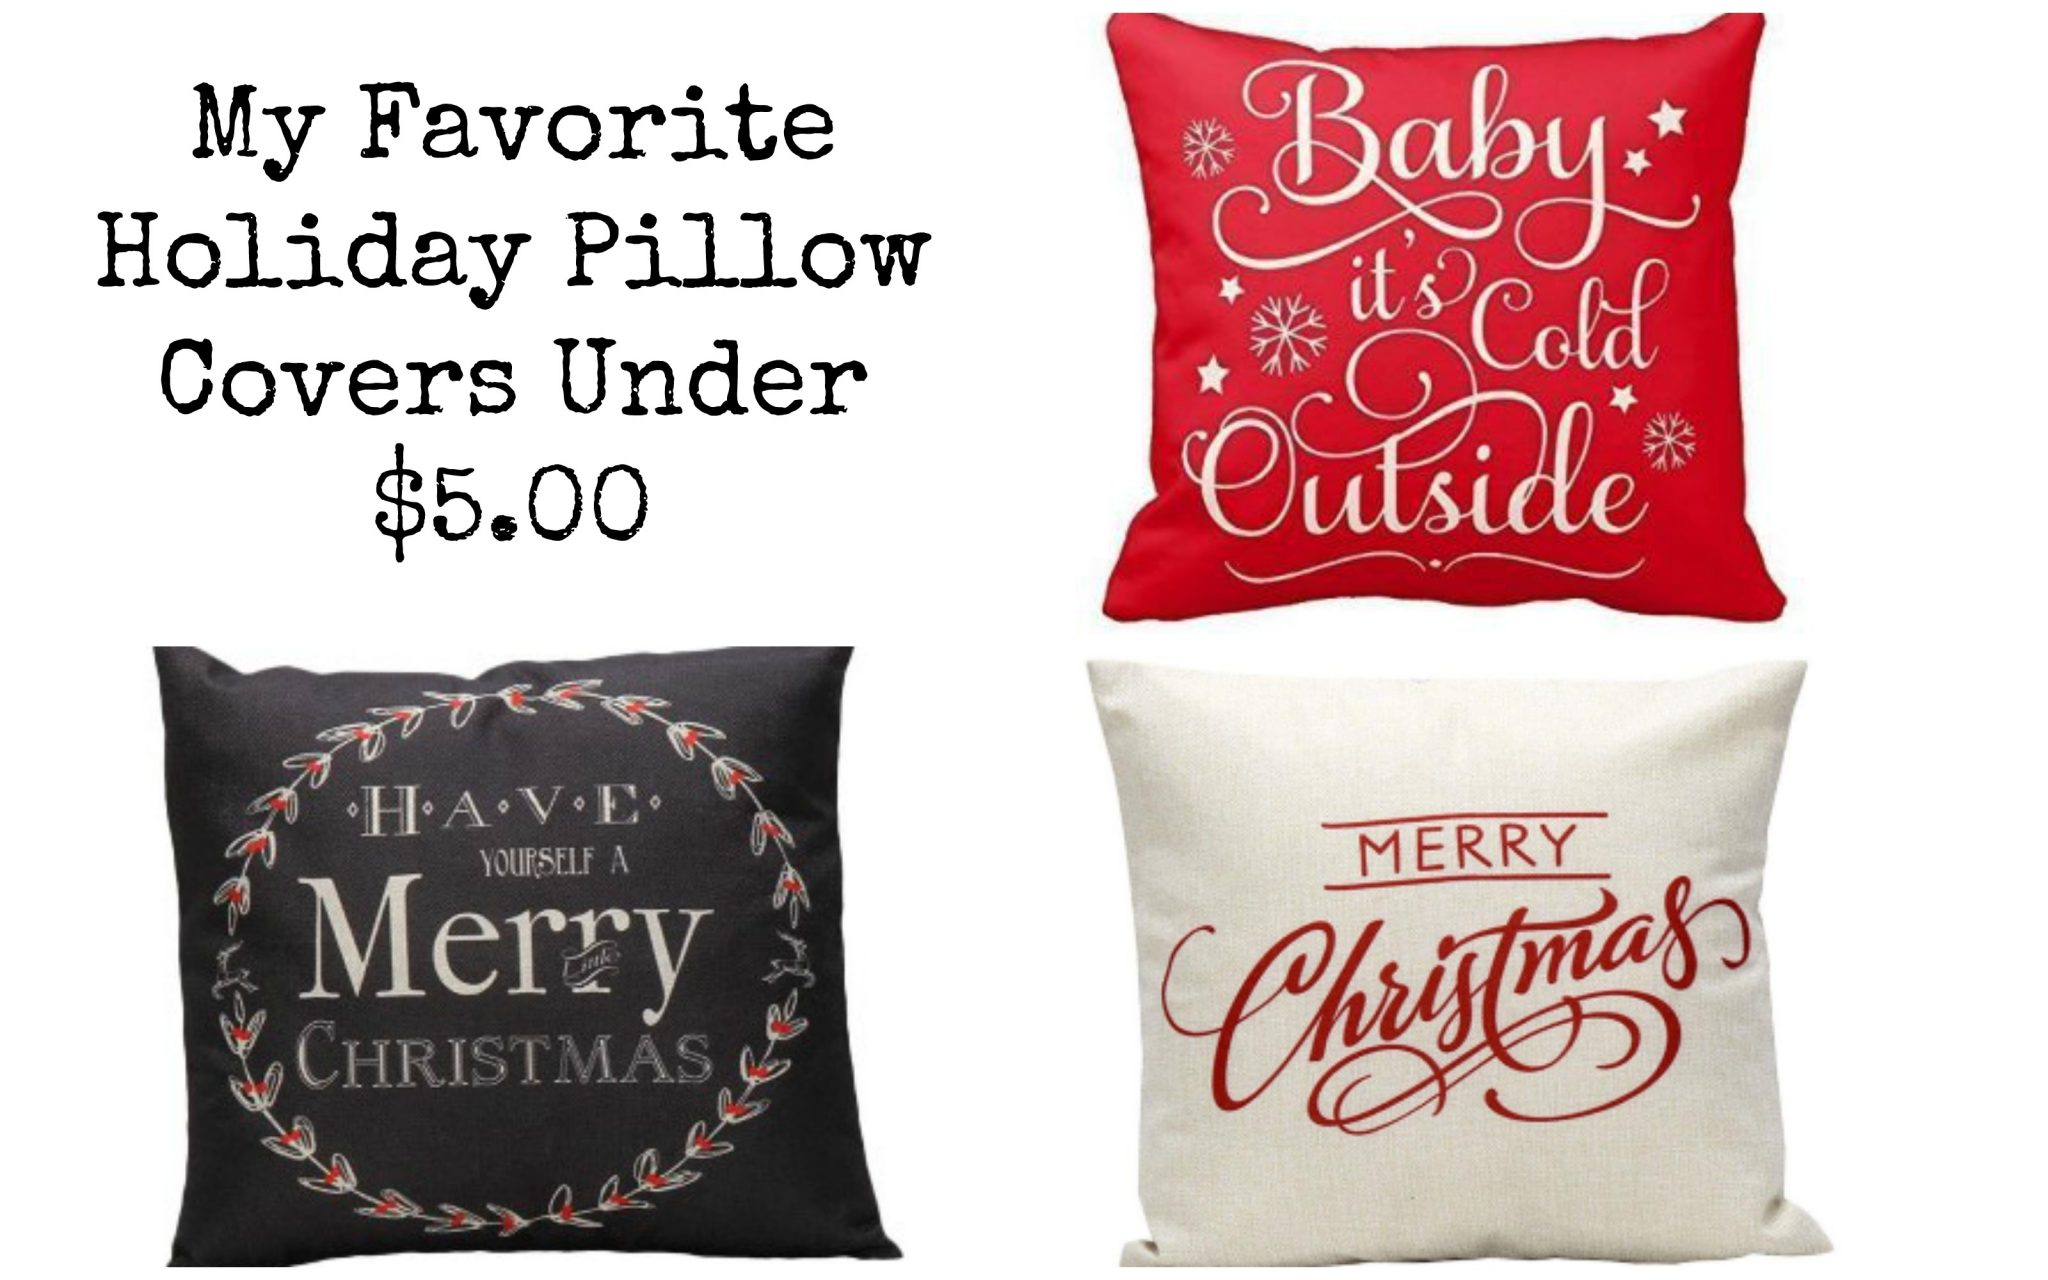 holidaypillowfeaturepic